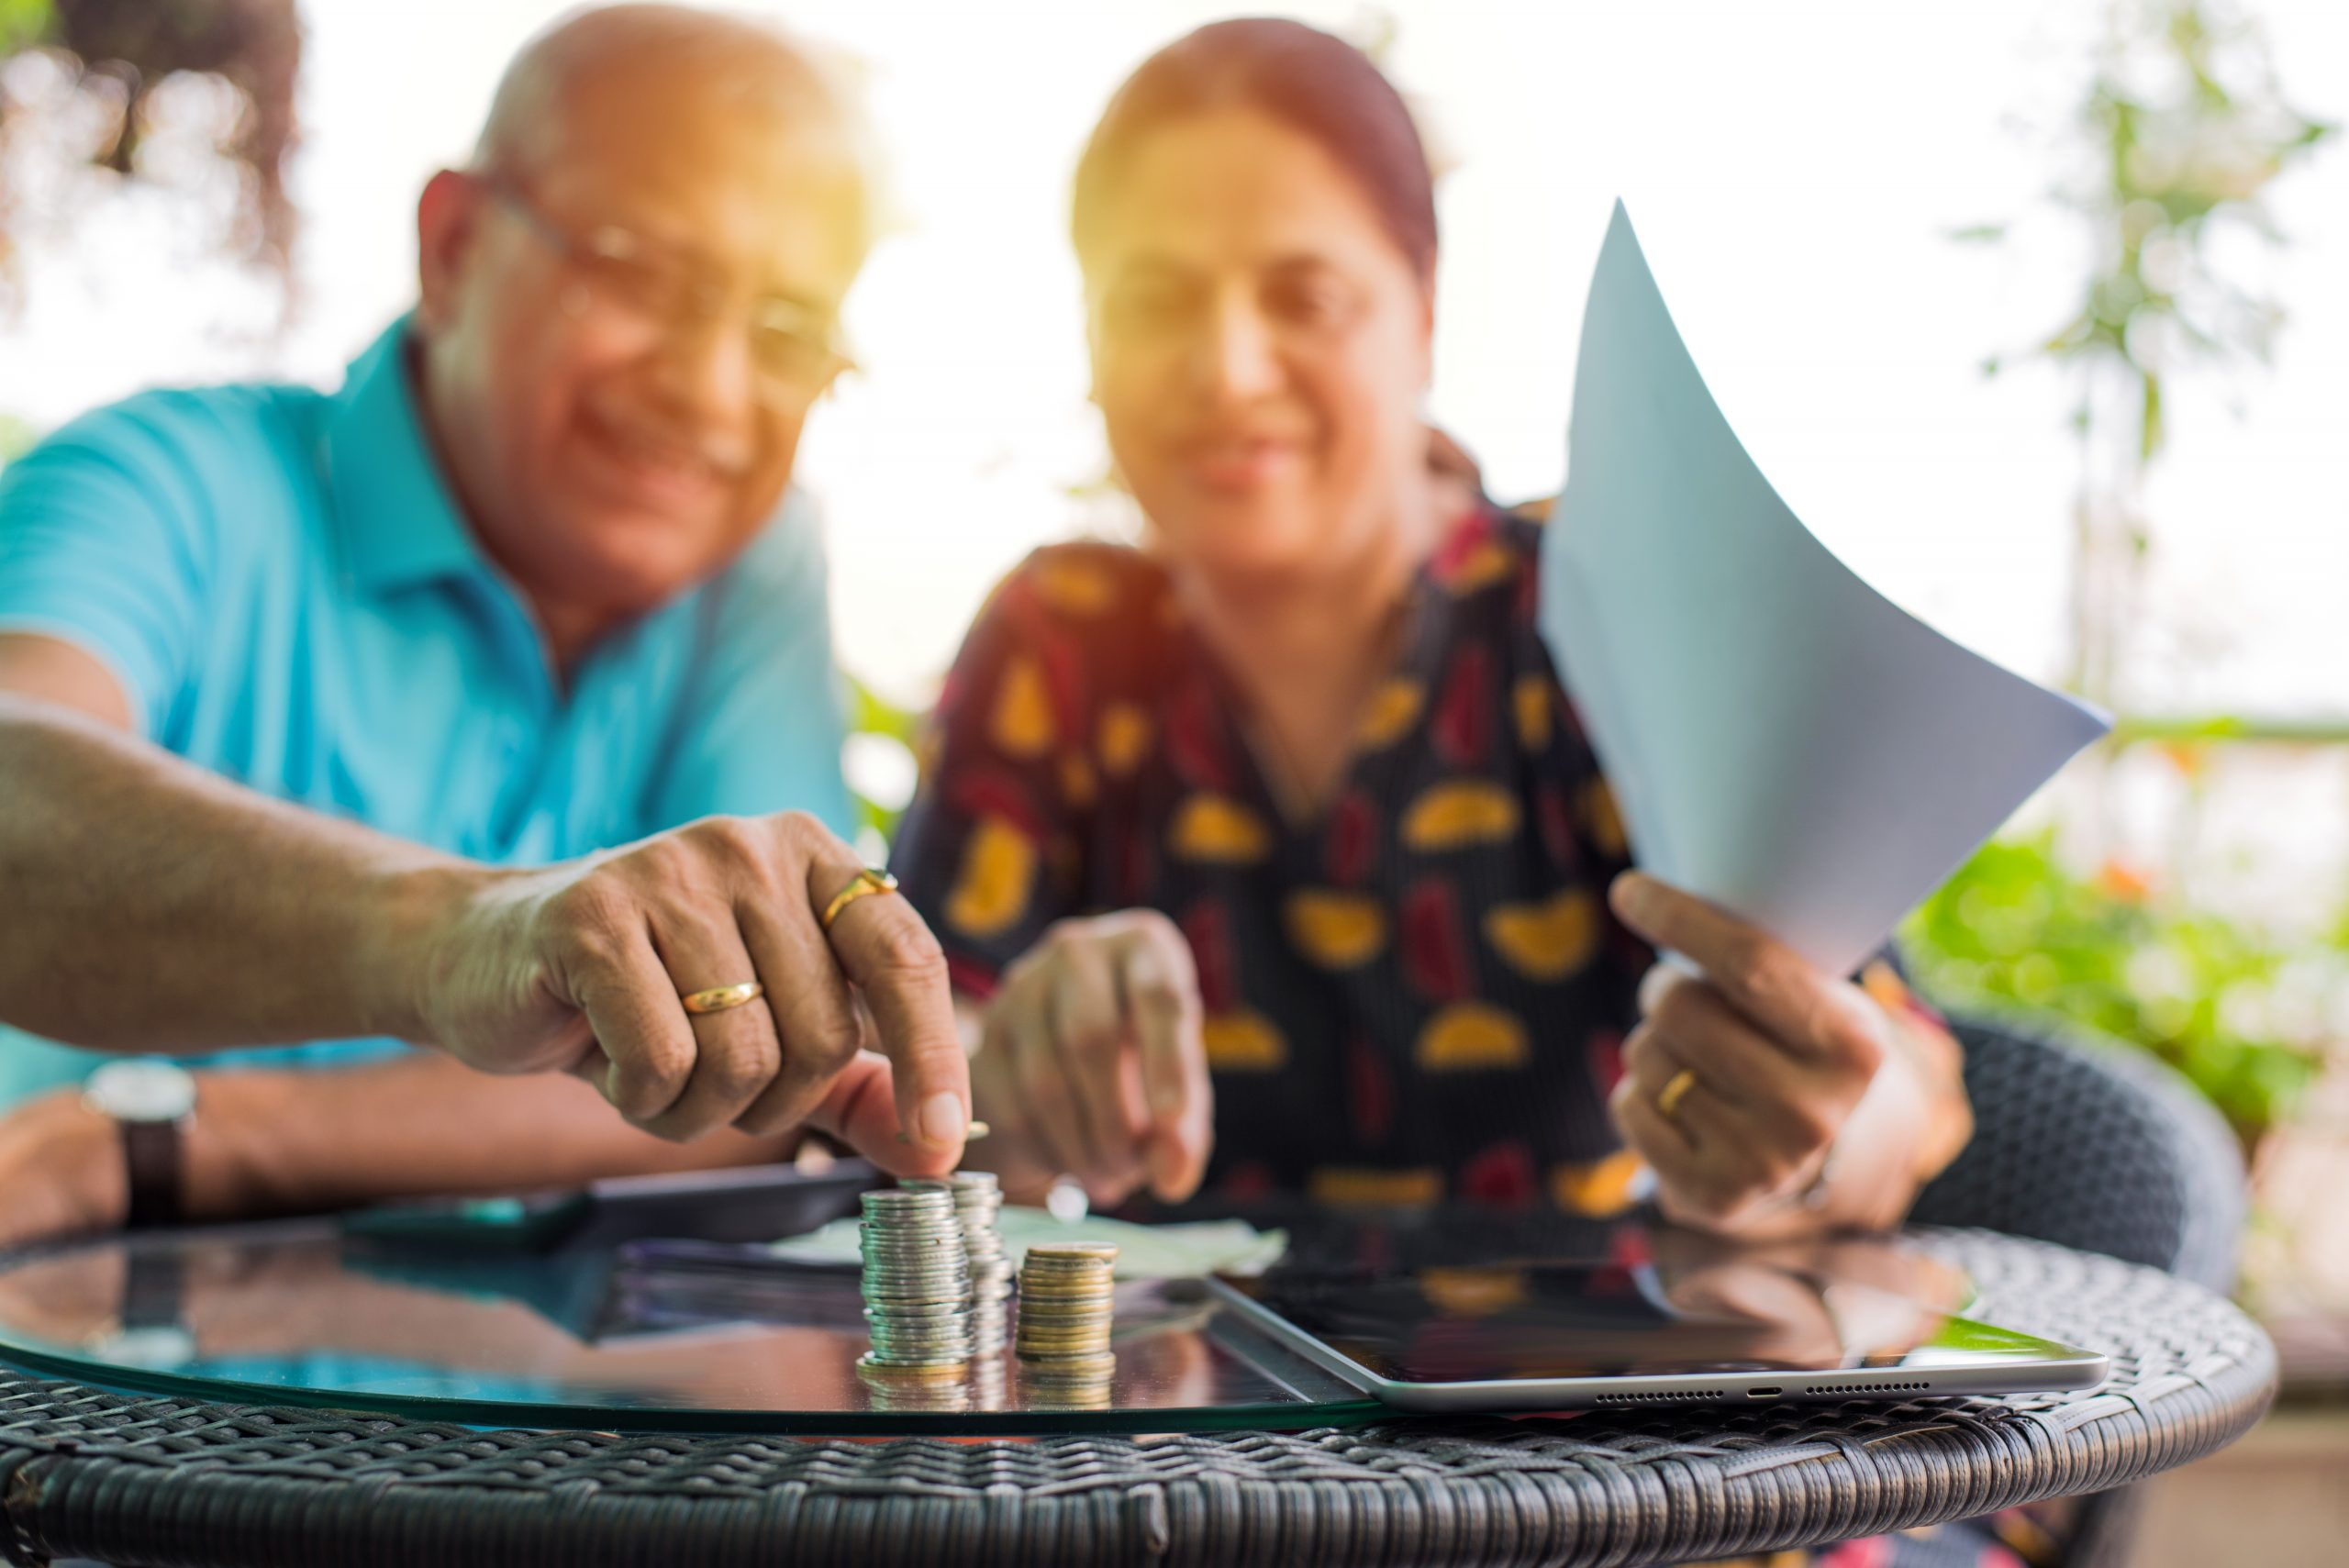 Elderly East Asian couple counting coins